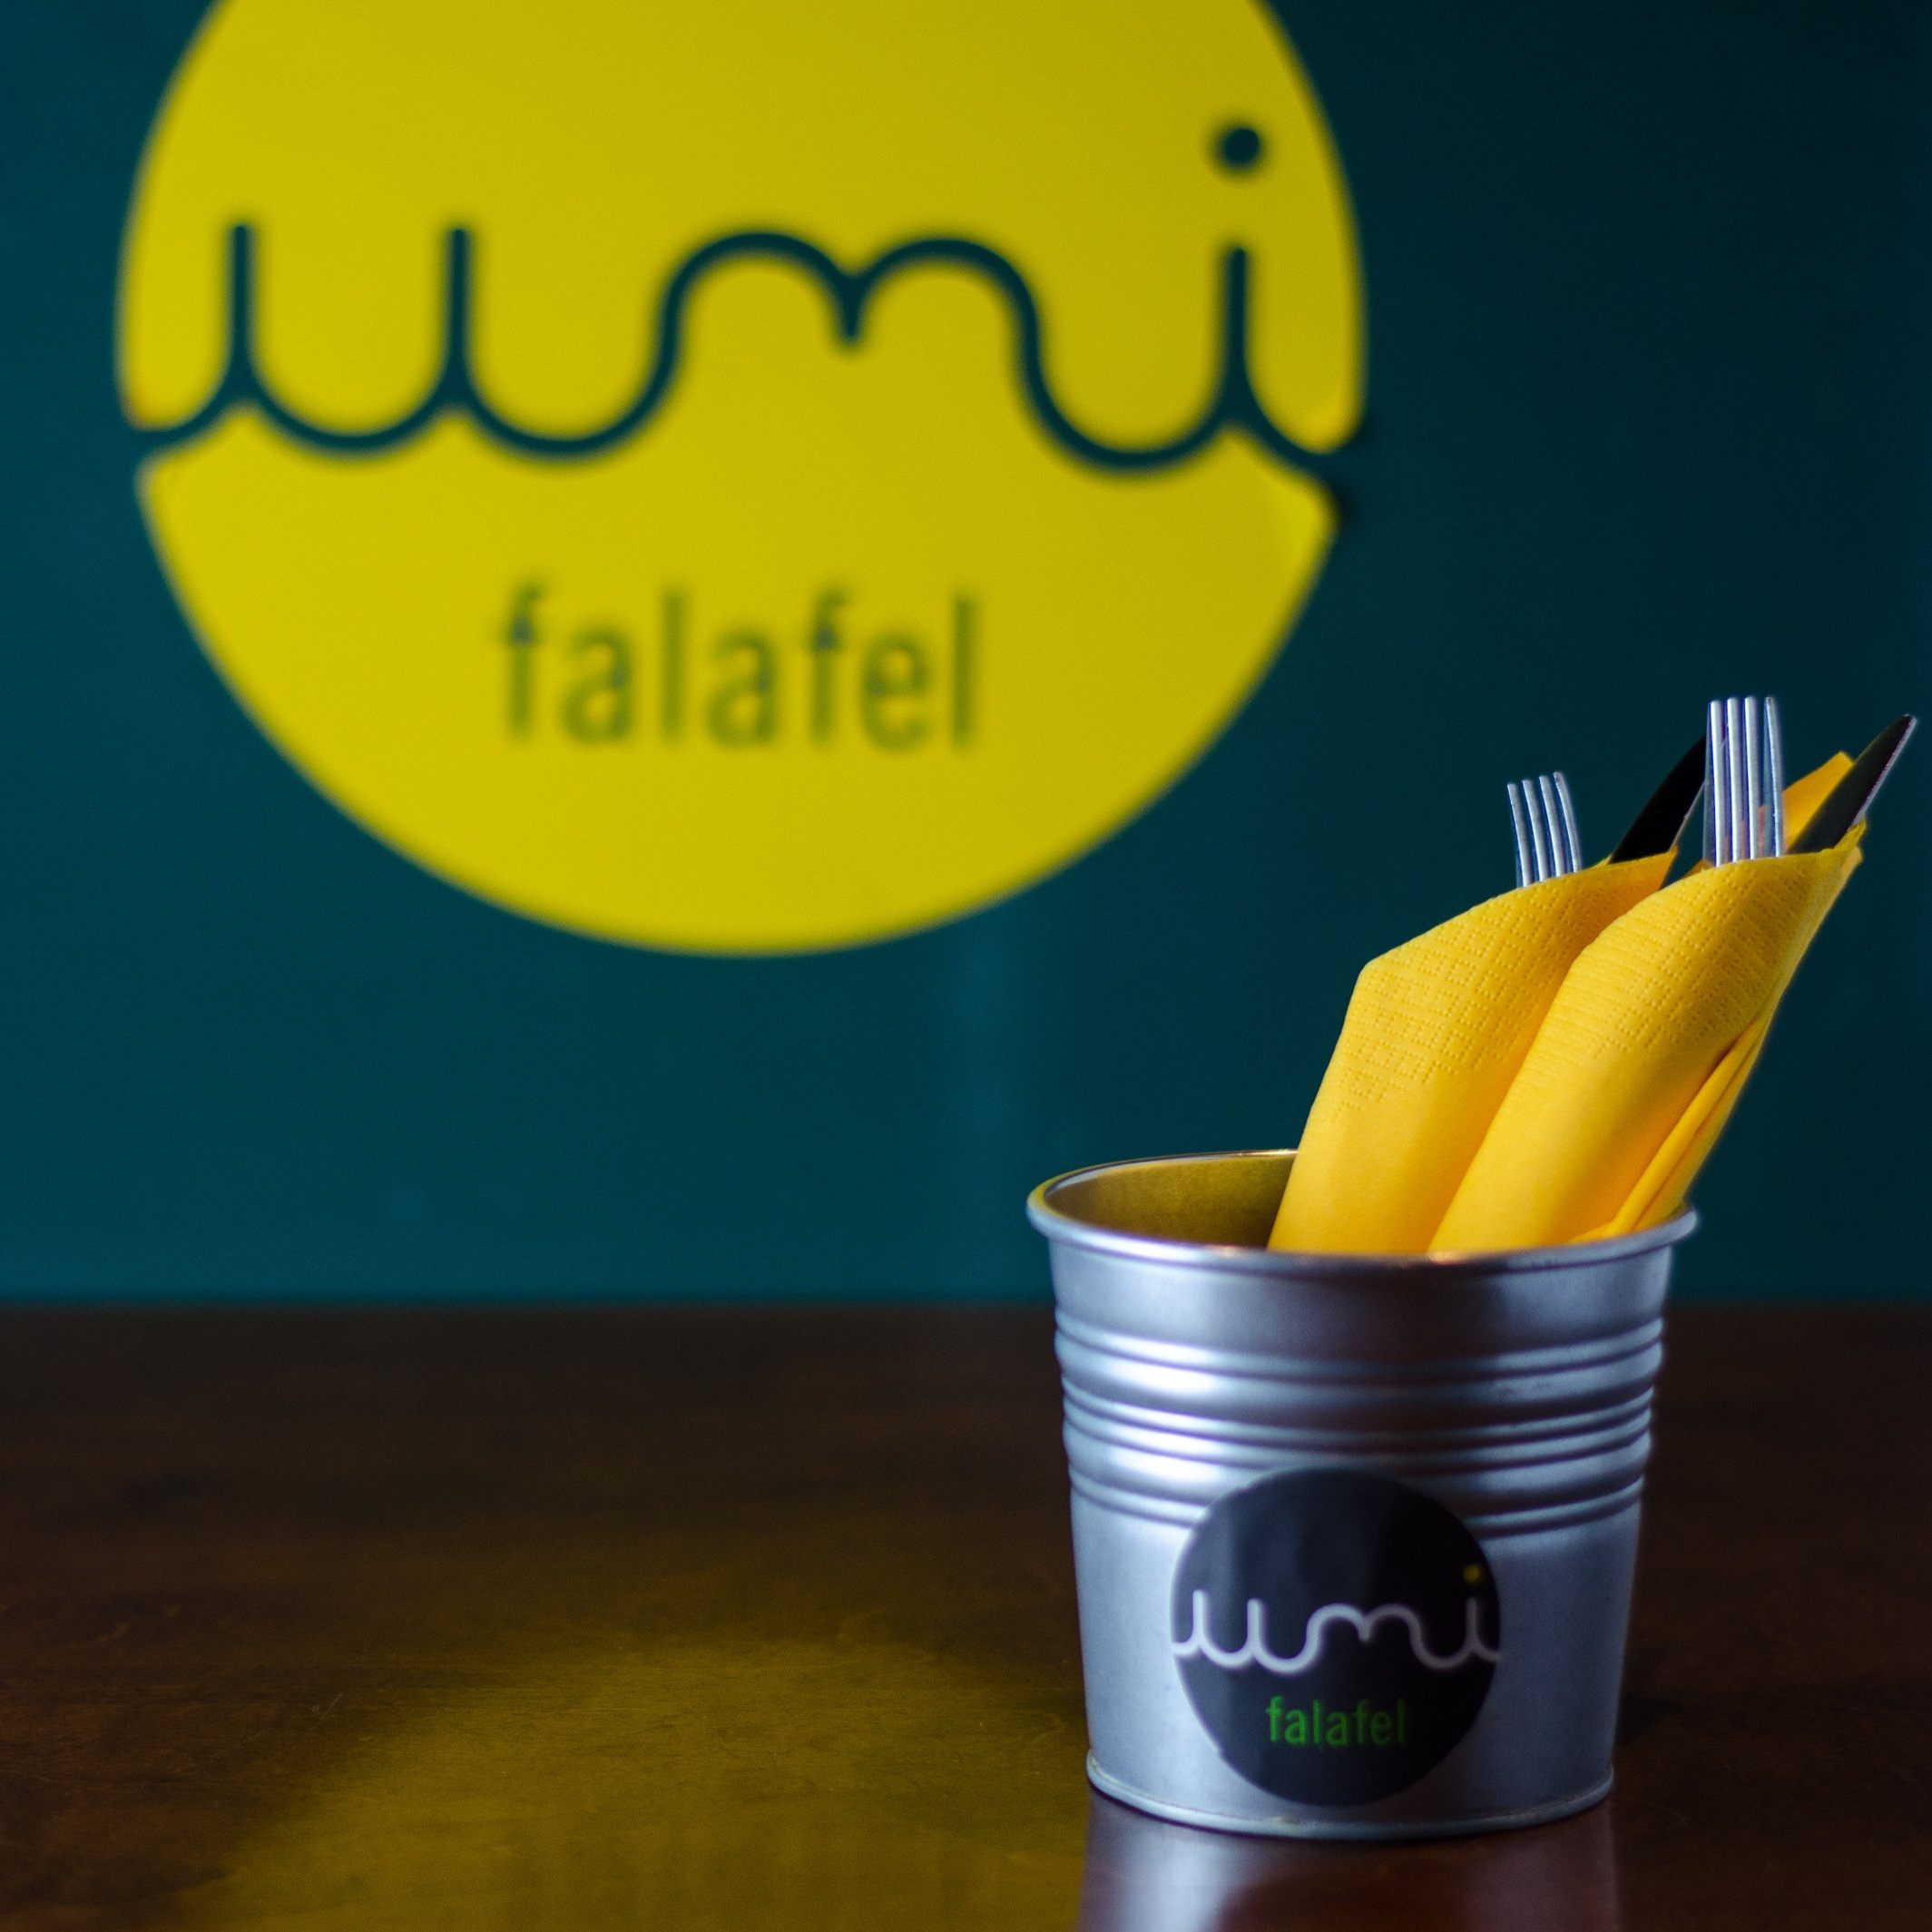 Dame St Dublin - 13 Dame St, Dublin 2 Dublin D02HX6701 670 6866info@umifalafel.ieOpen 7 days from 12.00 to 22.00